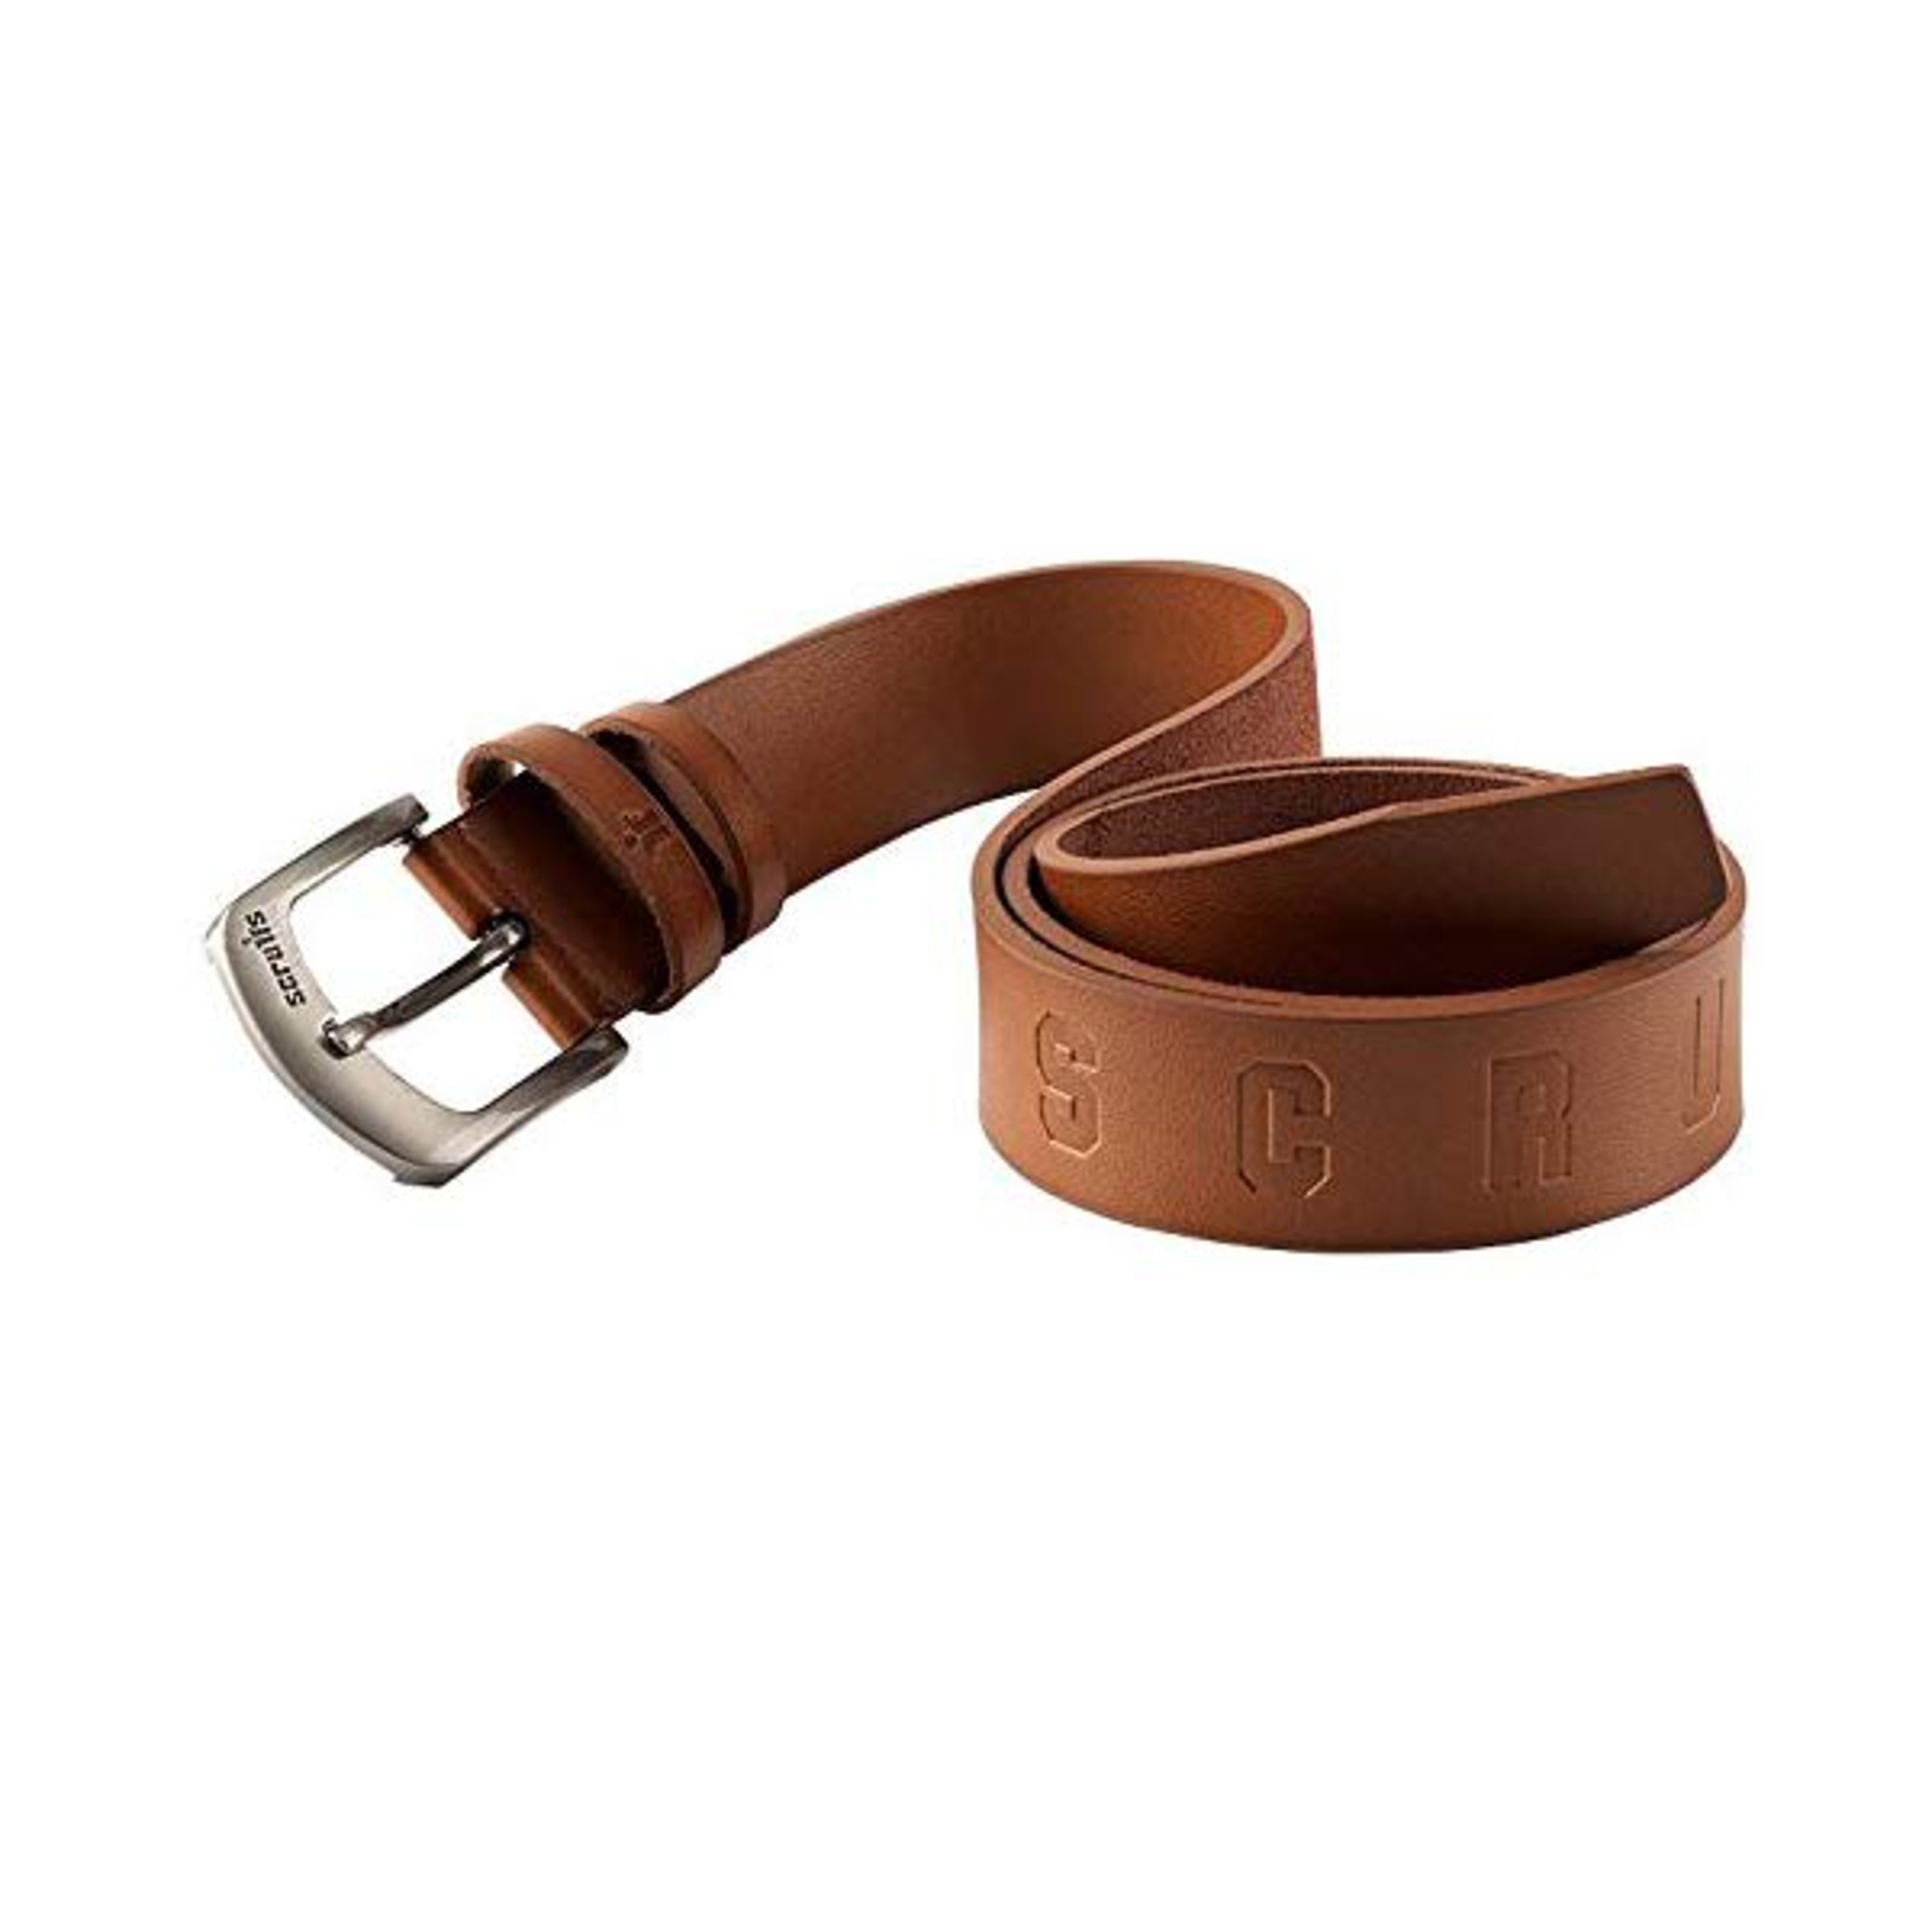 Scruffs Vintage Leather Belt deréköv